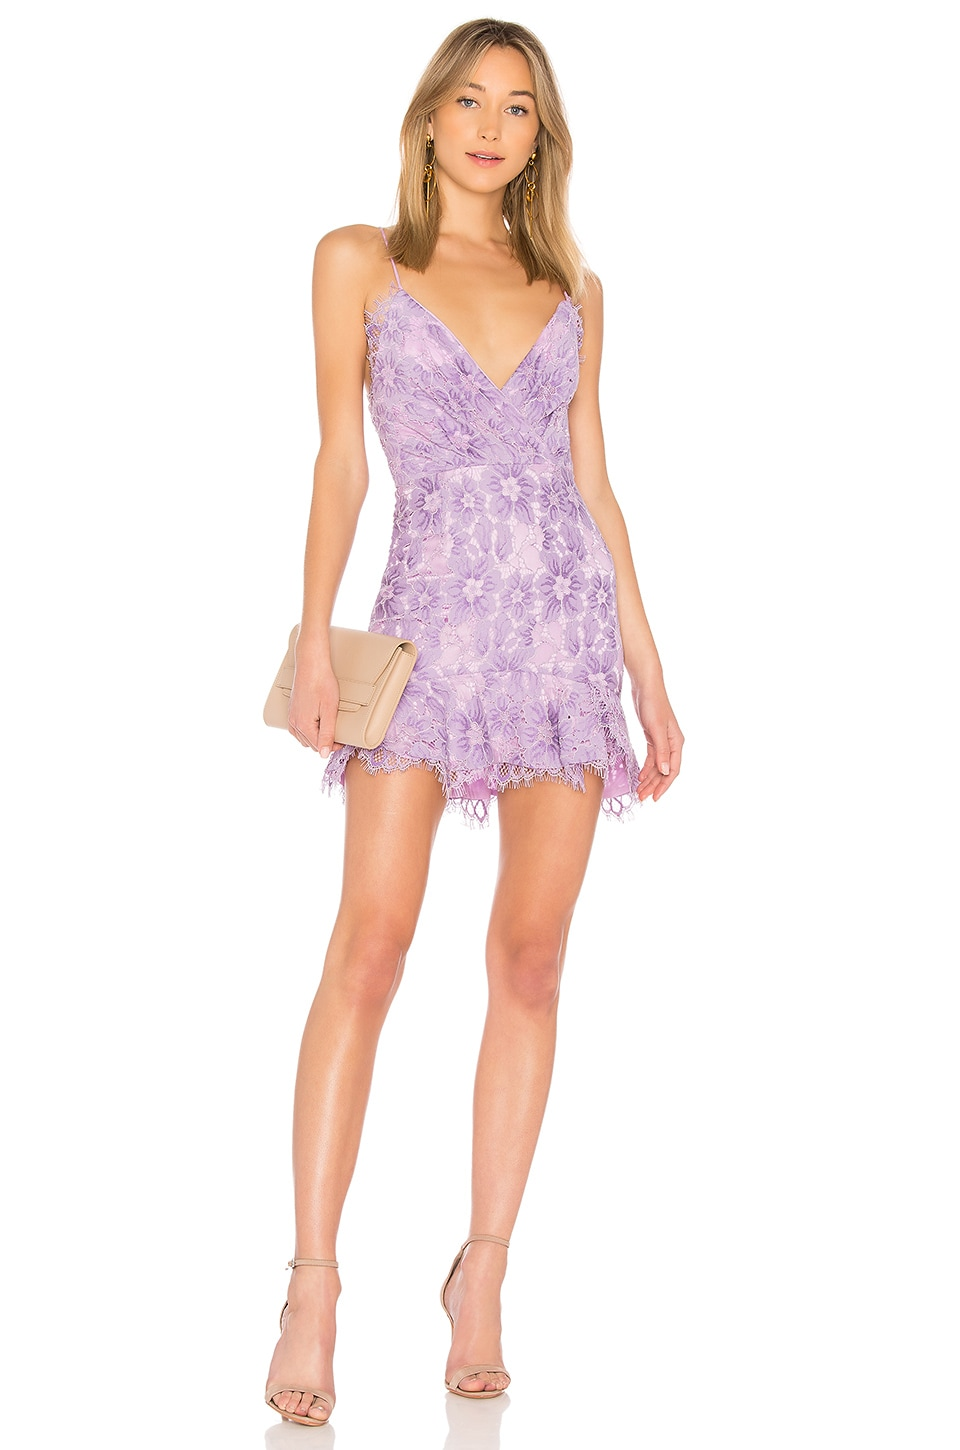 NBD Marilyn Dress in Lilac